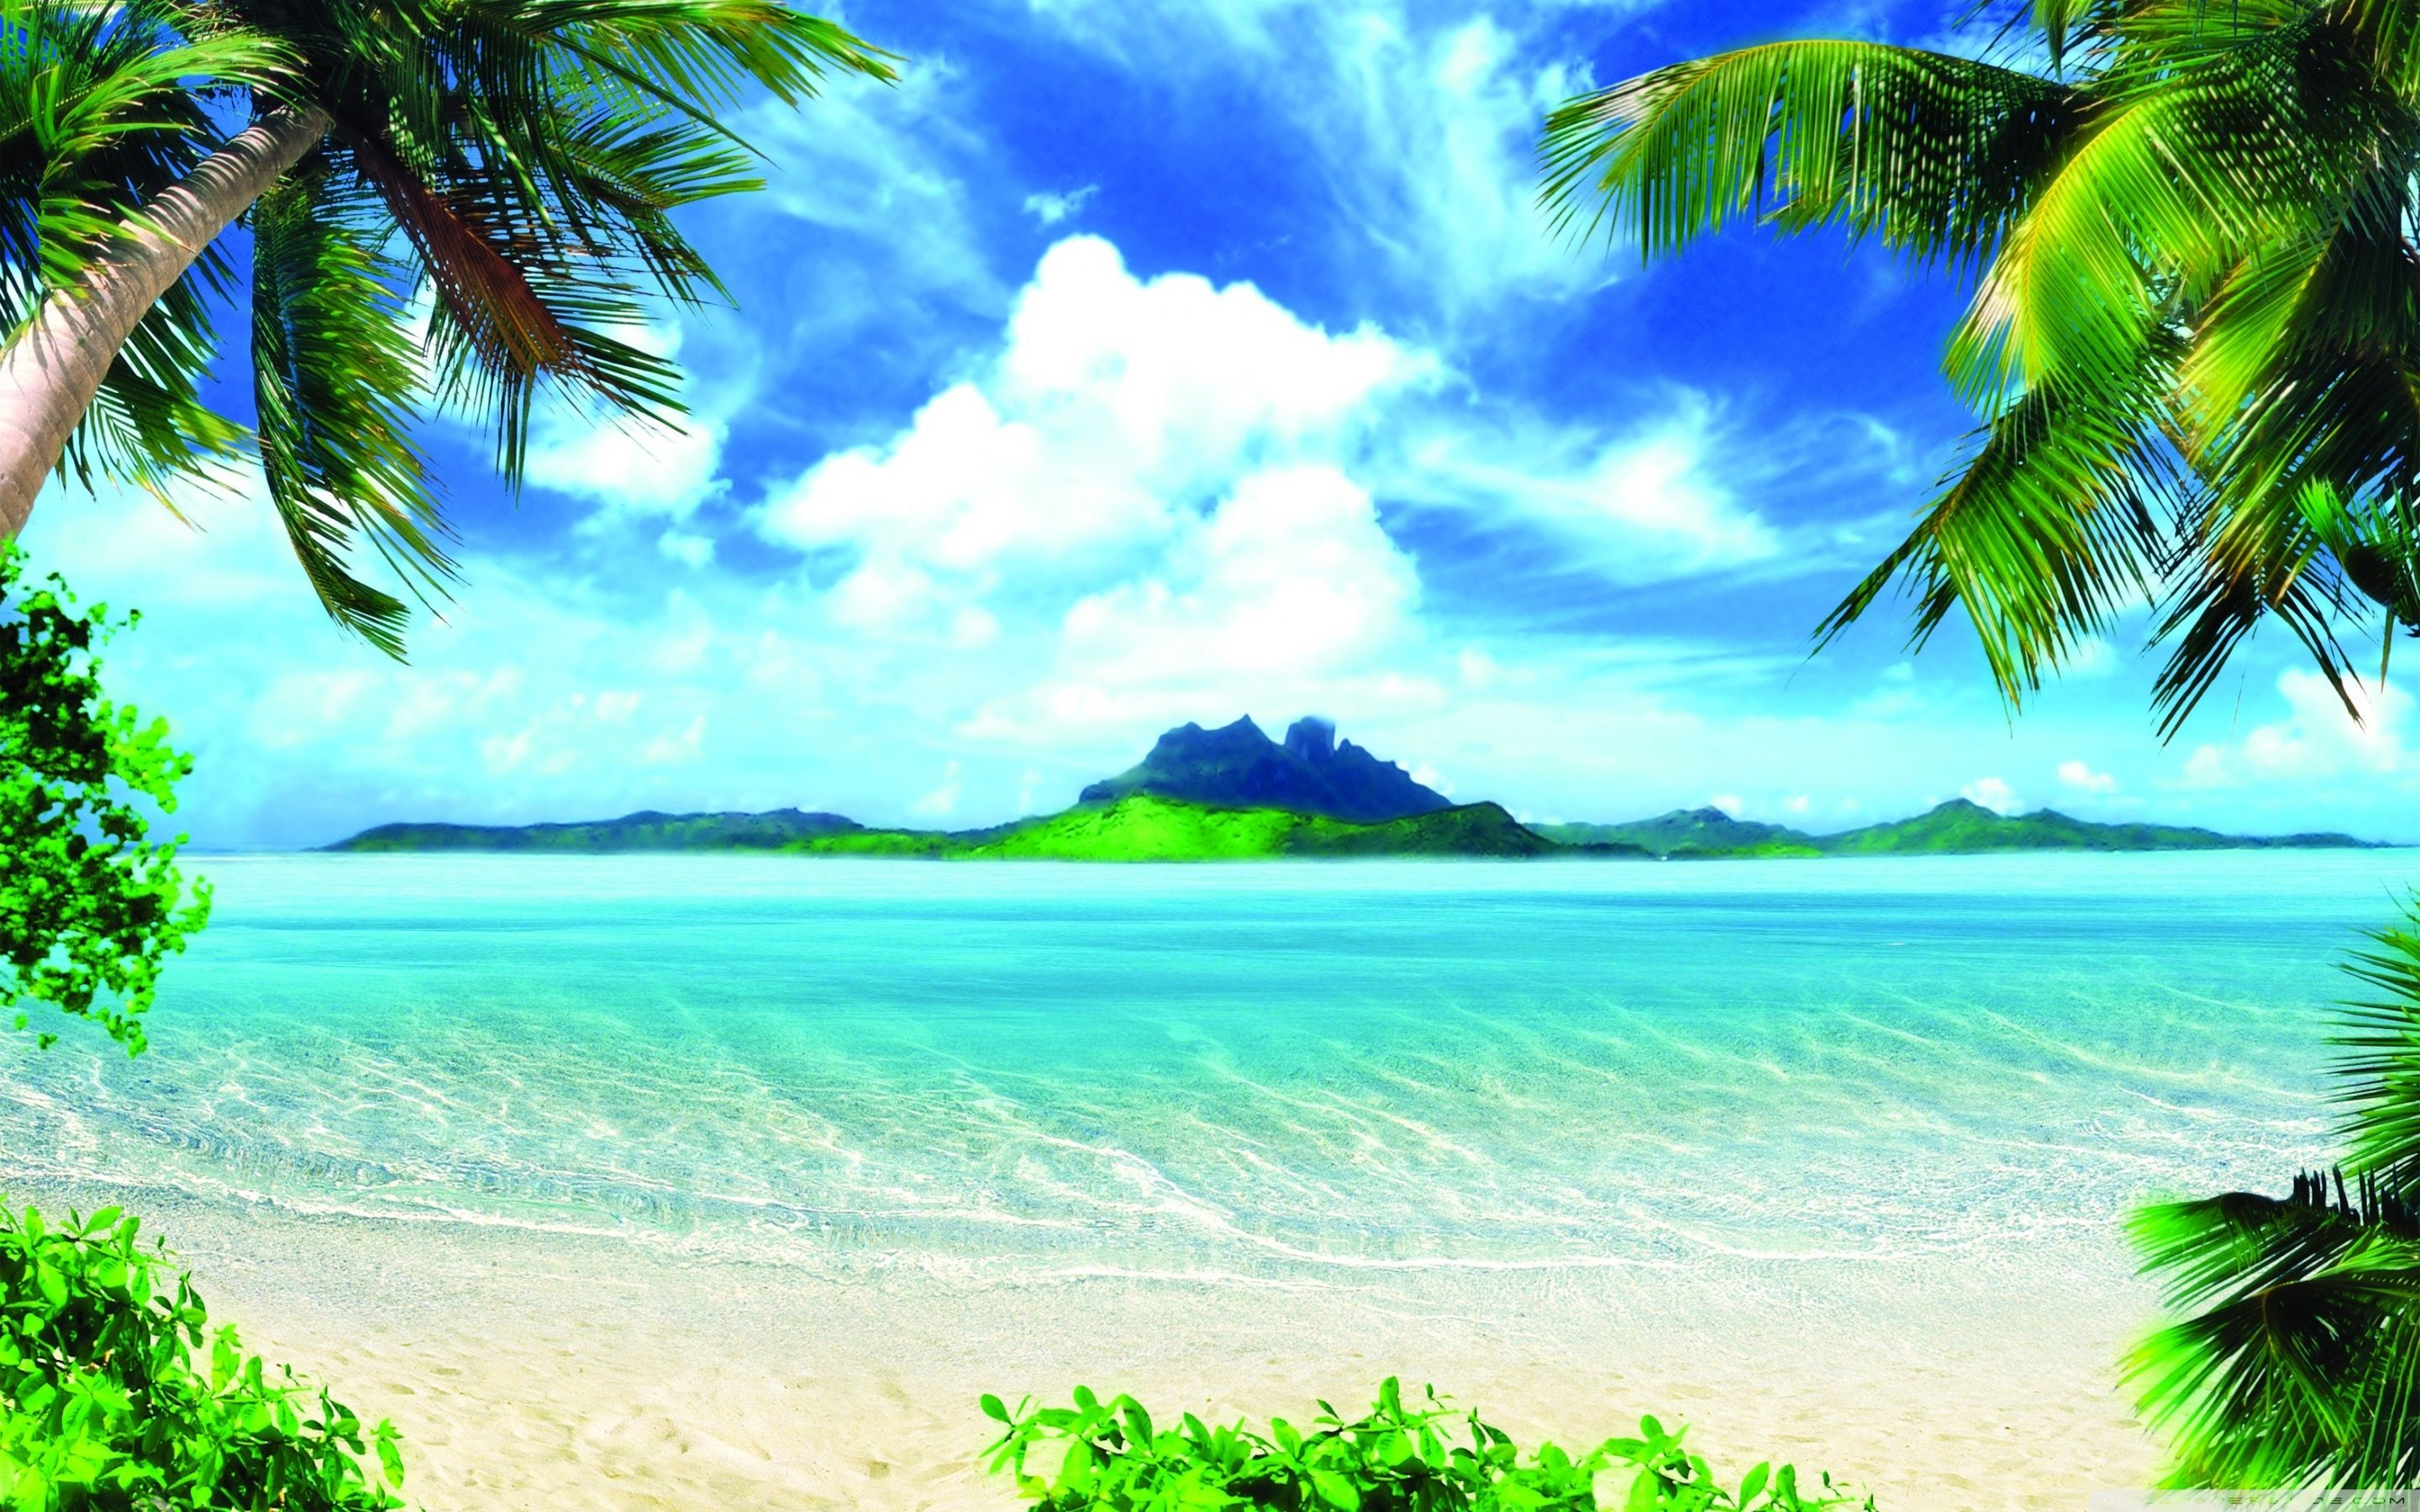 Summer Vacation Wallpapers   Top Summer Vacation Backgrounds 2880x1800